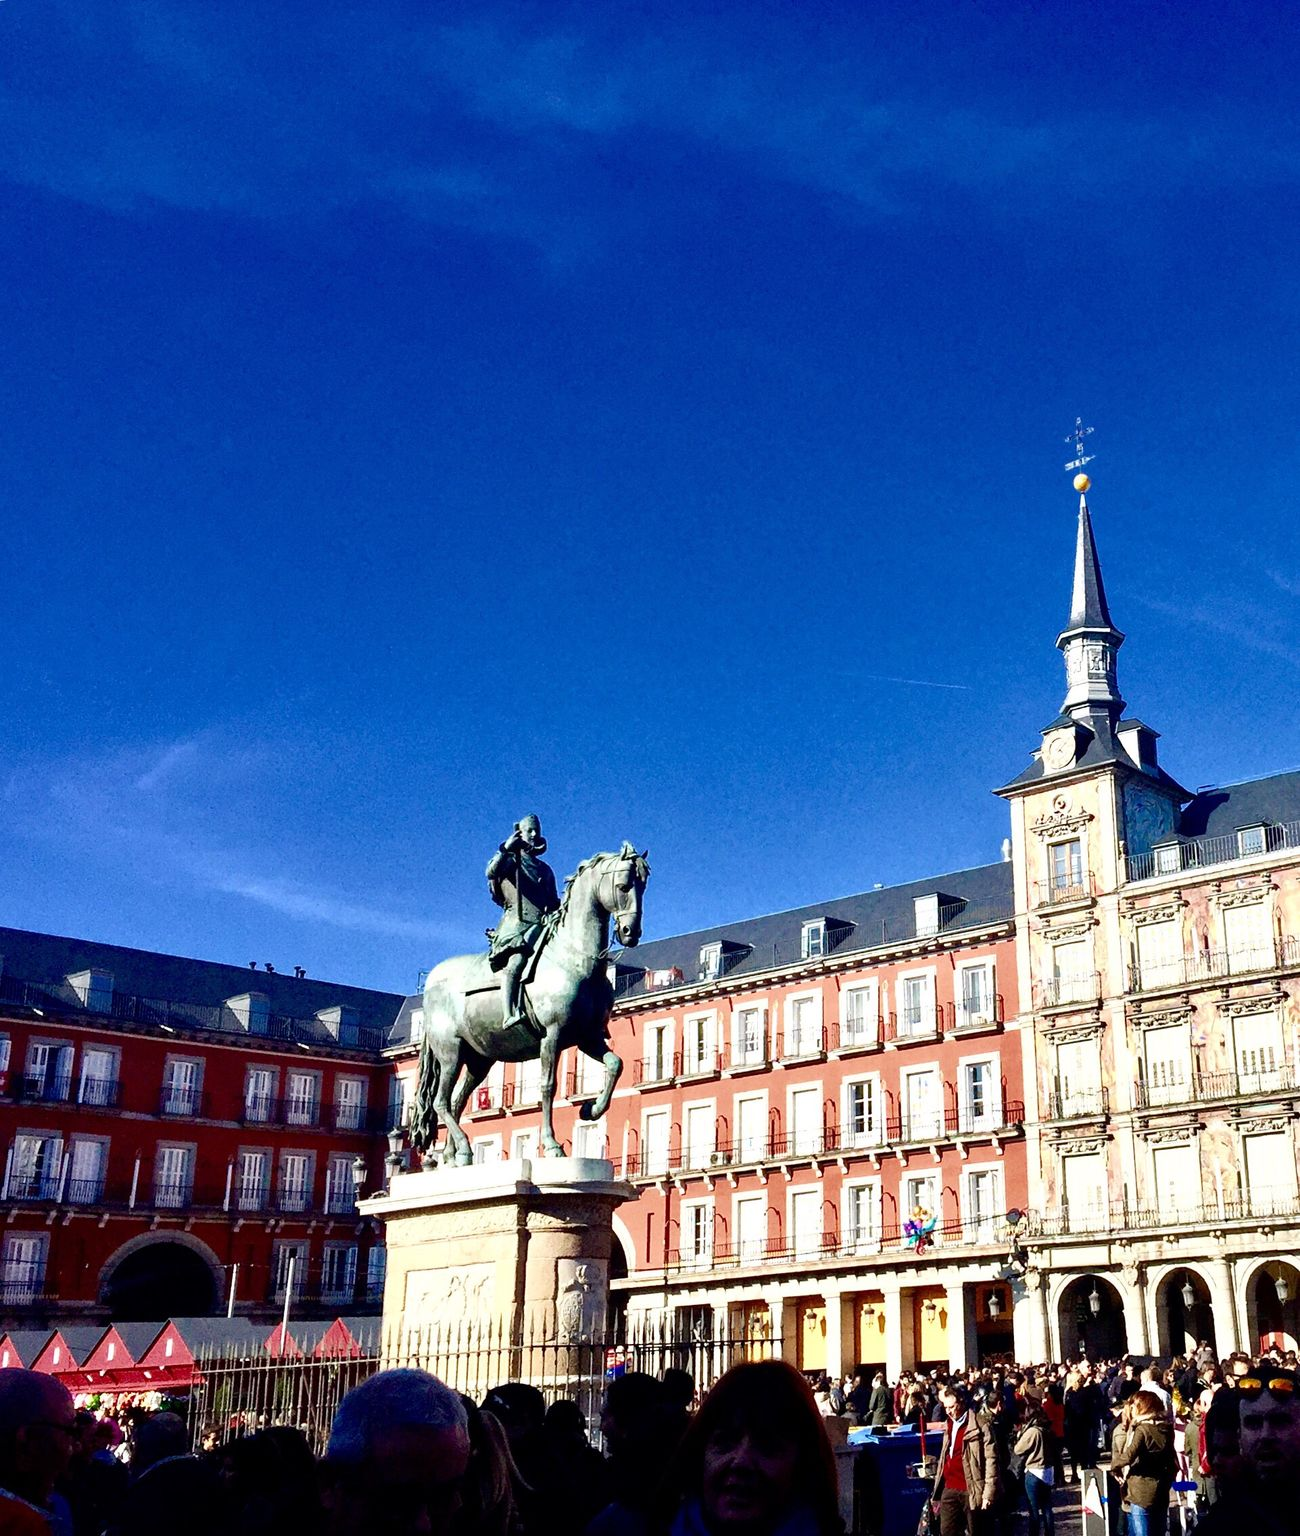 Architecture Building Exterior Built Structure Sculpture Statue Travel Destinations Travel Human Representation City Large Group Of People Tourism Low Angle View Sky Outdoors Illuminated Day Renacimiento Español Felipe III Statue Juan De Herrera Plaza Mayor (Madrid).